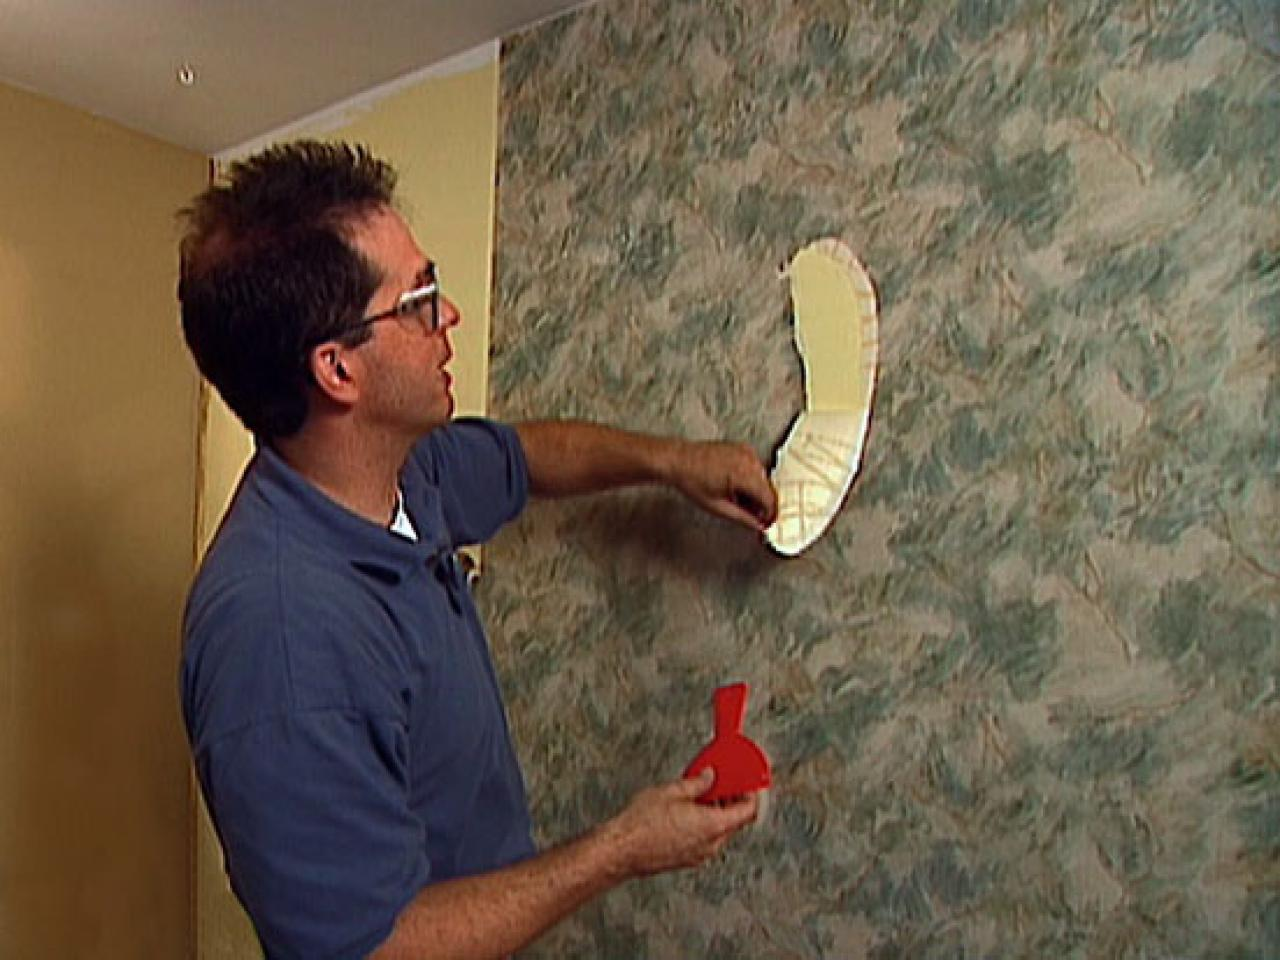 Wallpaper Removal Techniques Interior Design Styles and Color 1280x959